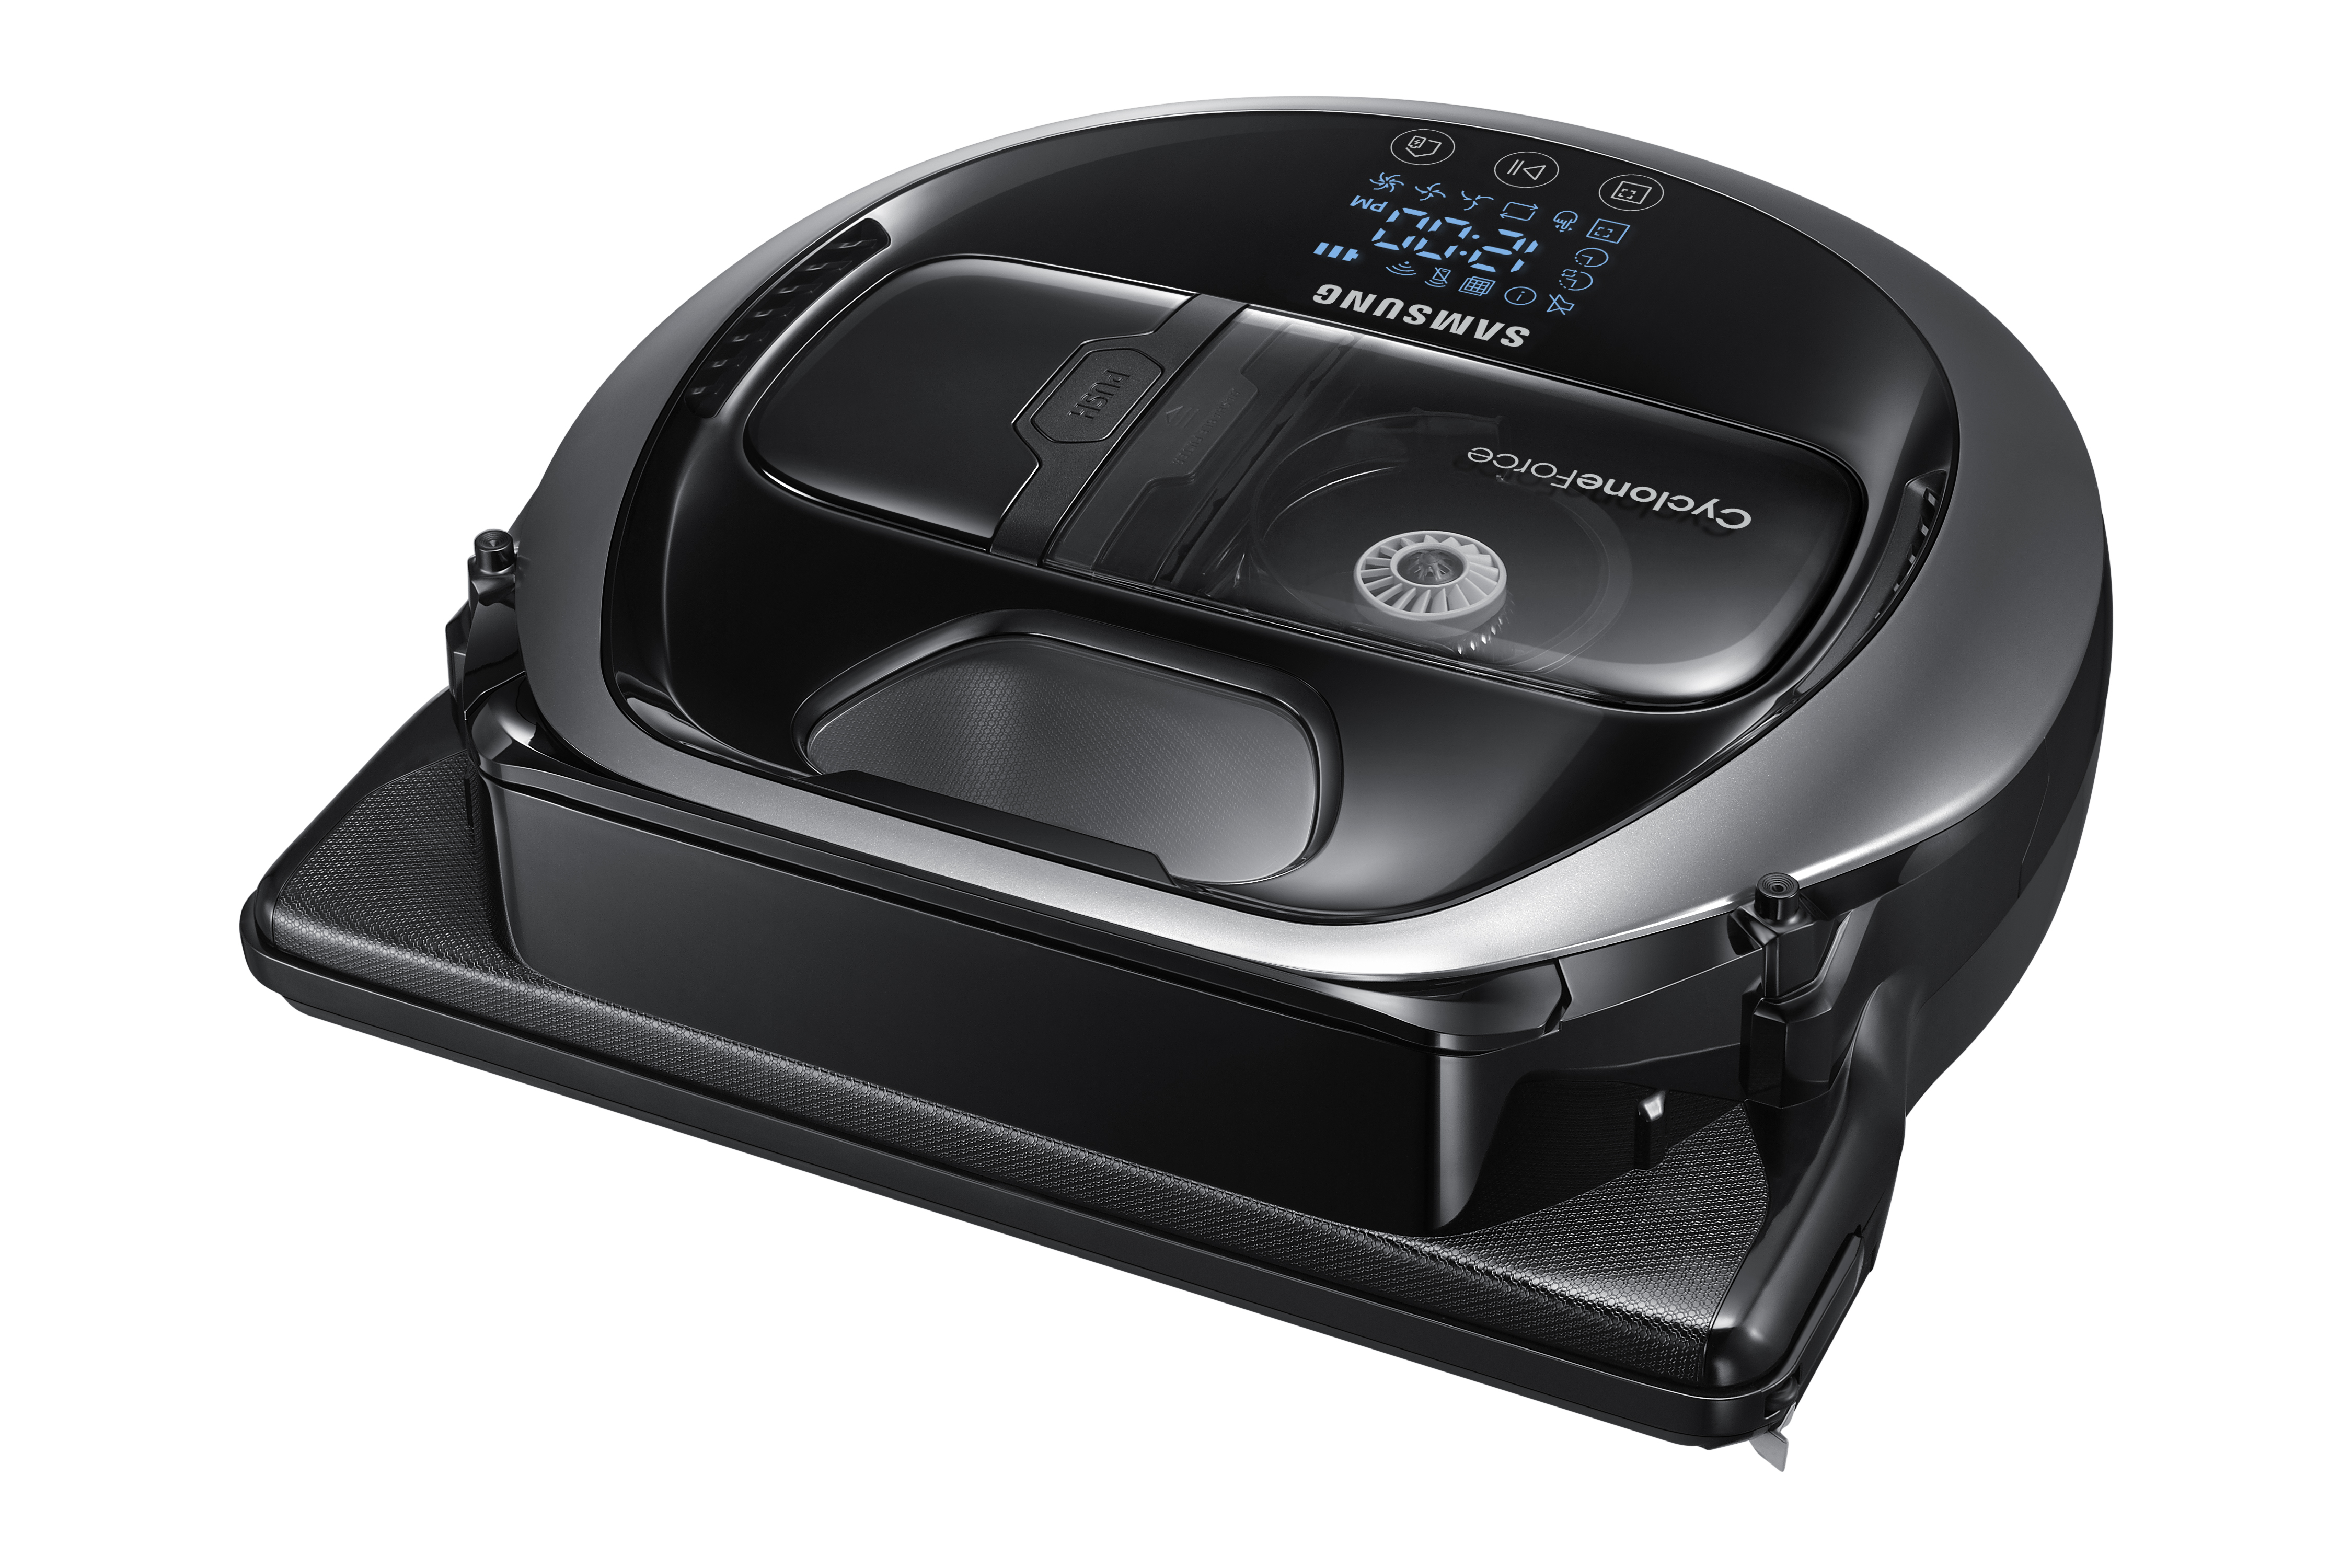 You can control Samsung's newest robot vacuum with your voice